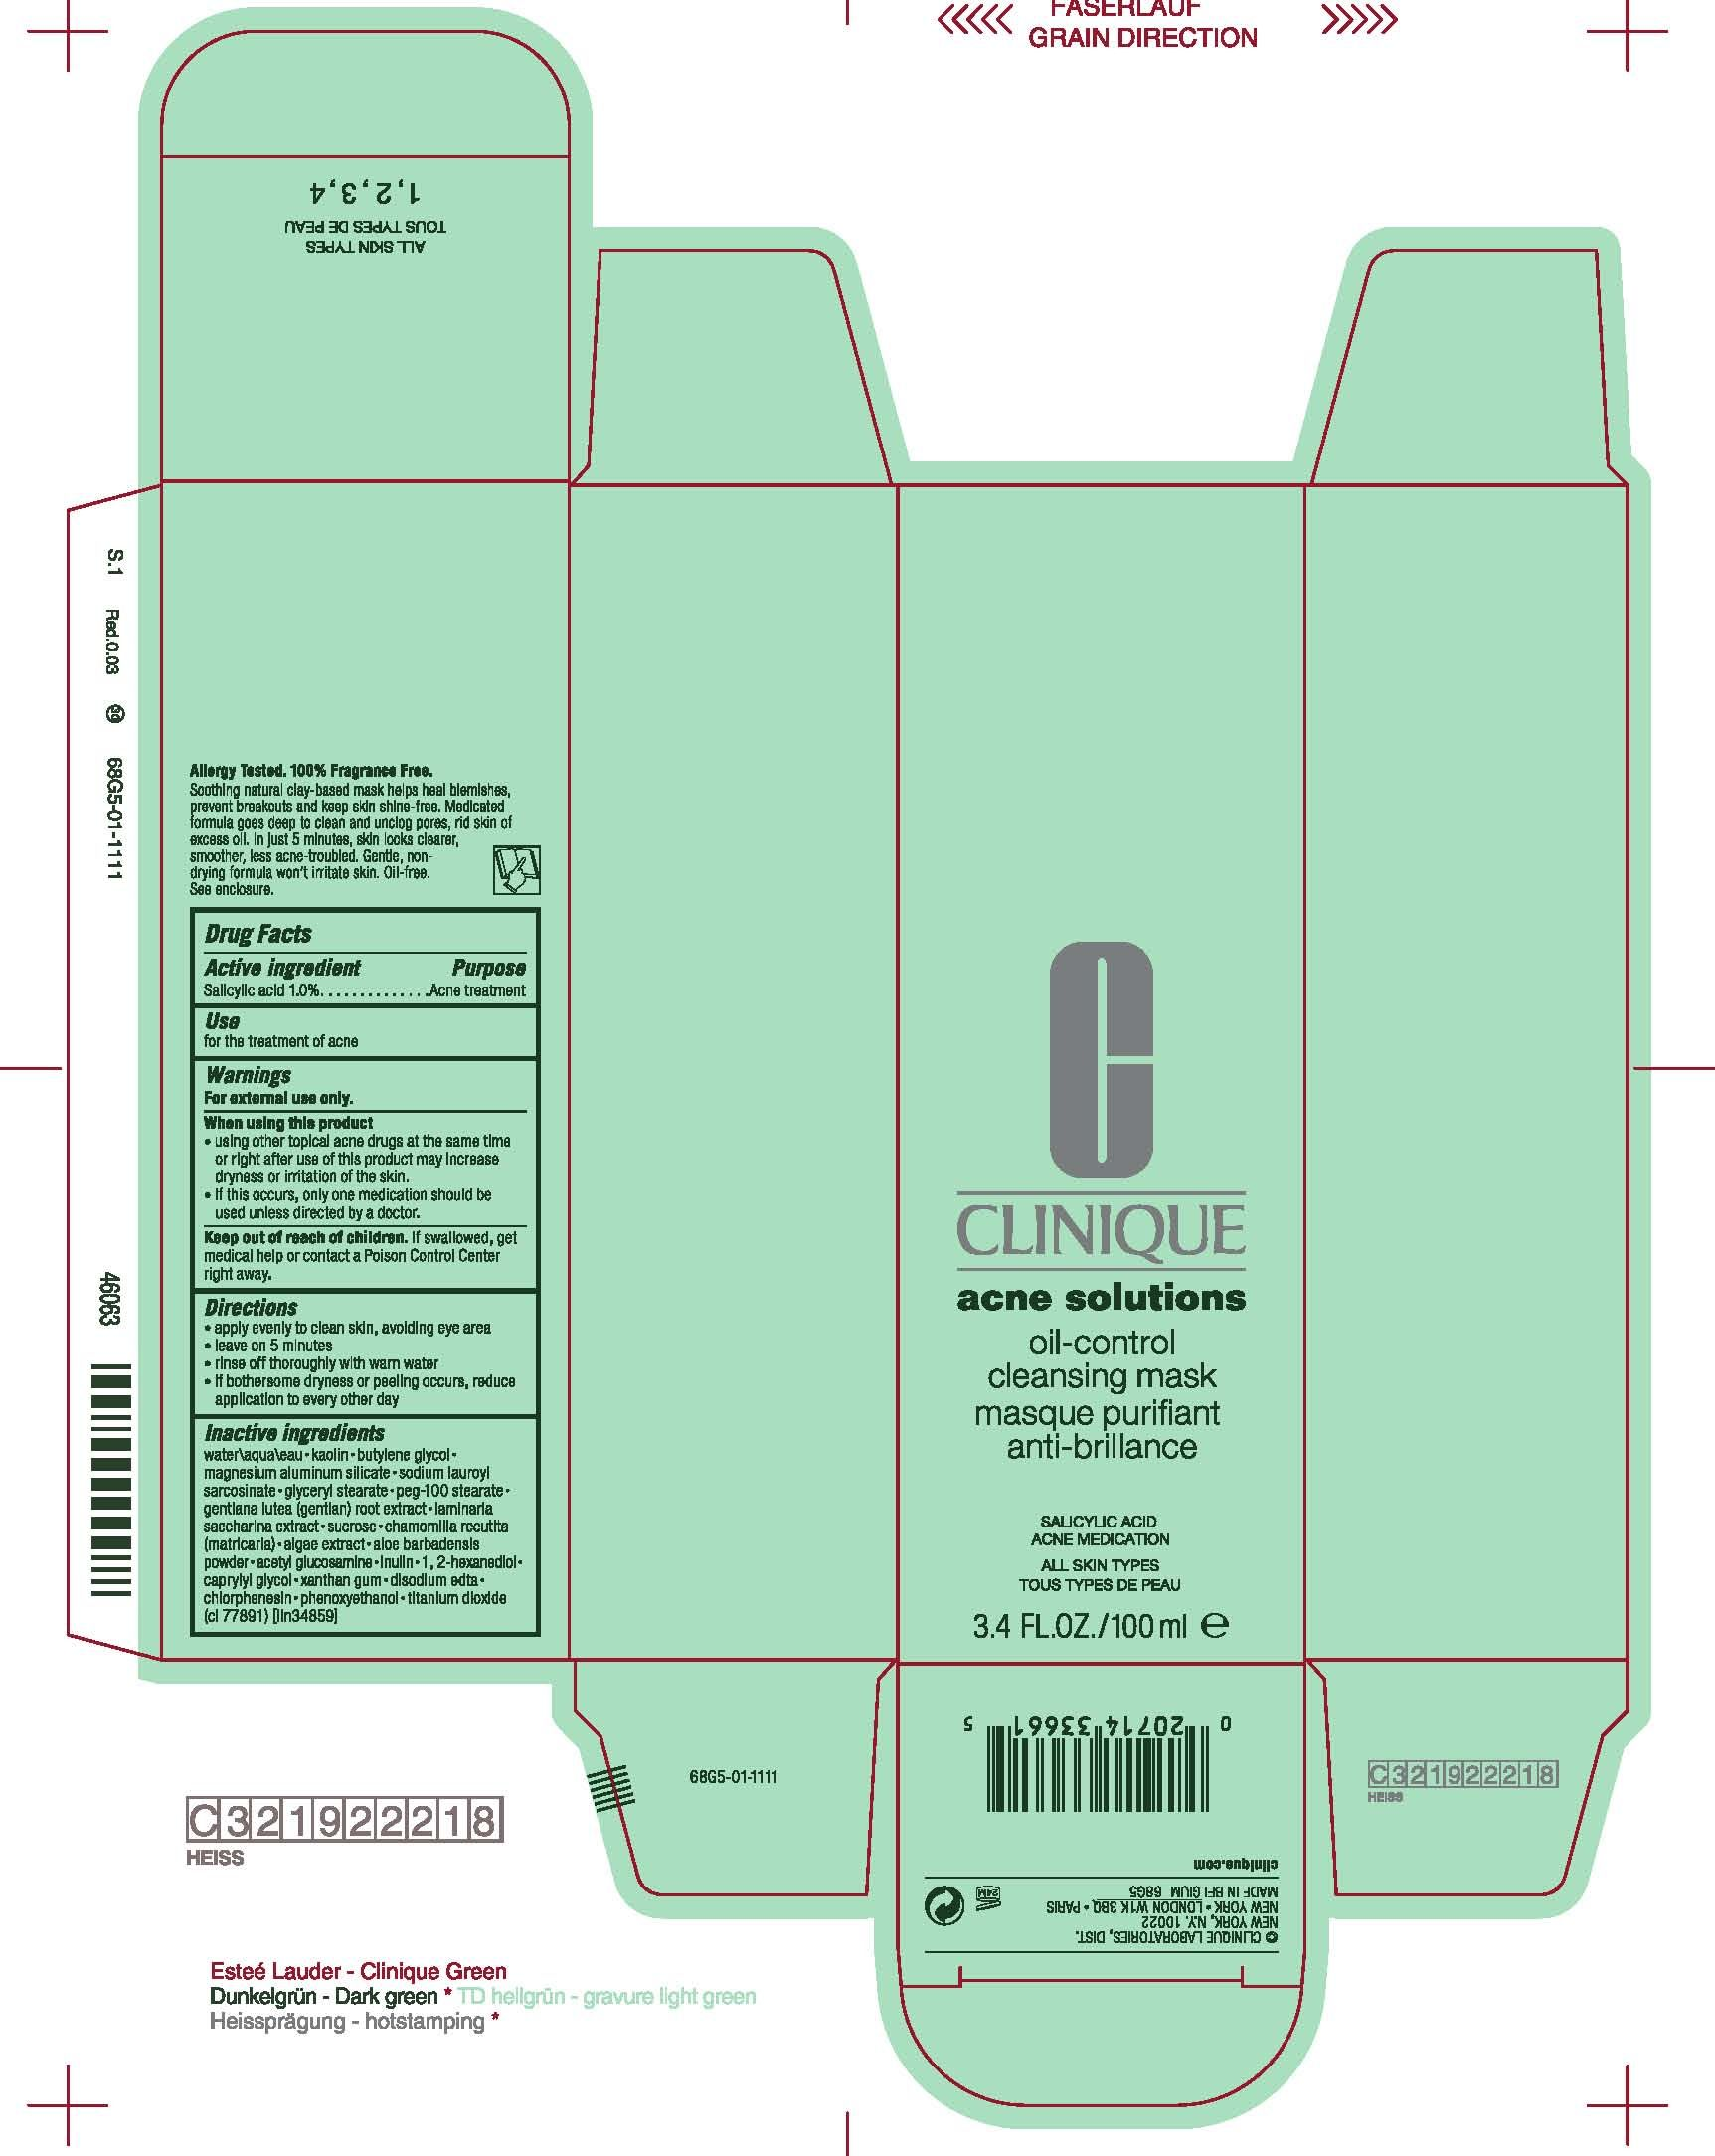 clinique packaging template | Perfume and Cream Research | Pinterest ...